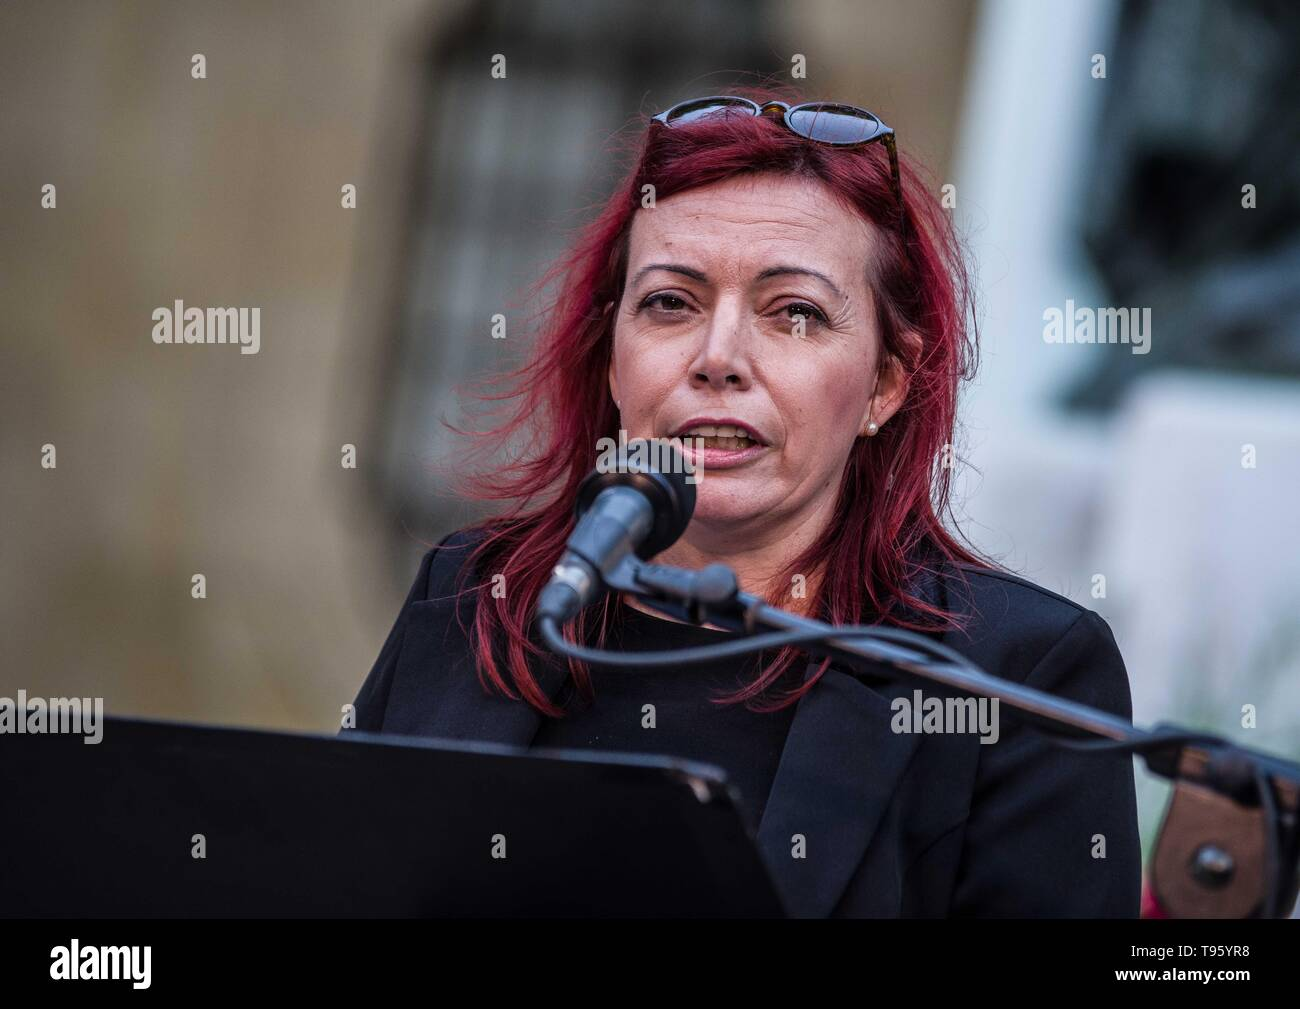 Valletta, Malta. 16th May, 2019. Vigil speaker Becky D'Ugo. Daphne caruana galizia, malta, Valletta, press freedom, pressefreiheit, reporters ohne grenzen, press freedom index, reporters without borders, corruption, occupy justice malta, impunity, attacks on journalists, declining press freedom, murdered journalist, assassinated journalists, joseph muscat, igiAfter 19 months of impunity in finding those who ordered the killing of Maltese journalist Daphne Caruana Galizia, supporters of democracy, press freedom and anti-corruption initiatives gathered at Valletta's Great Siege Momorial for a - Stock Image